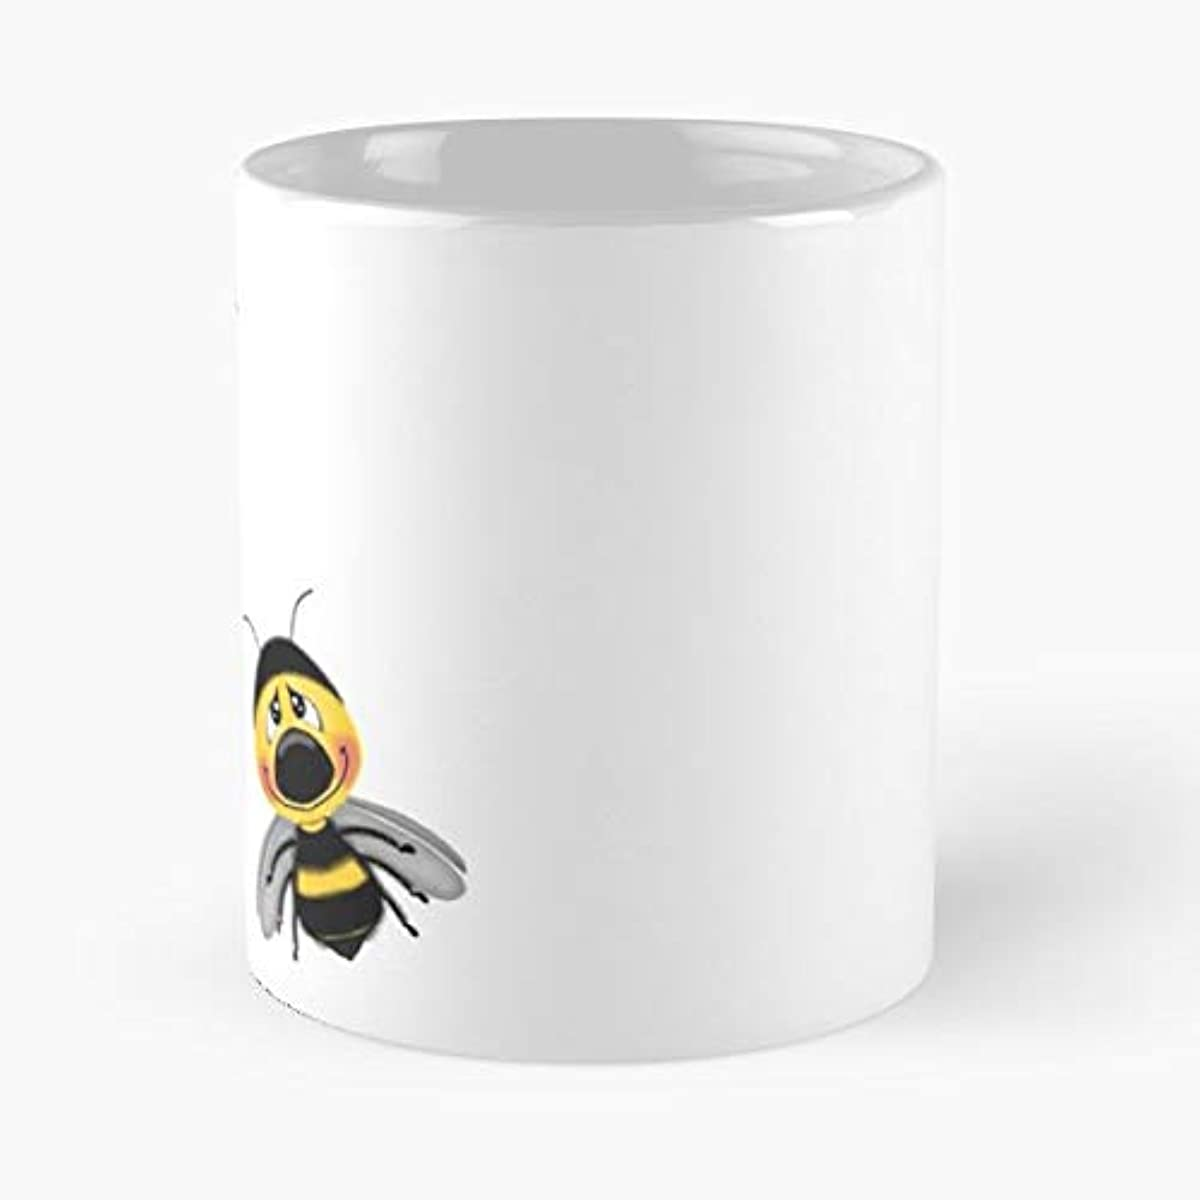 Bees Bee Honey Bumble - Funny Sophisticated Design Great Gifts -11 Oz Coffee Mug.the Best Gift For Holidays.